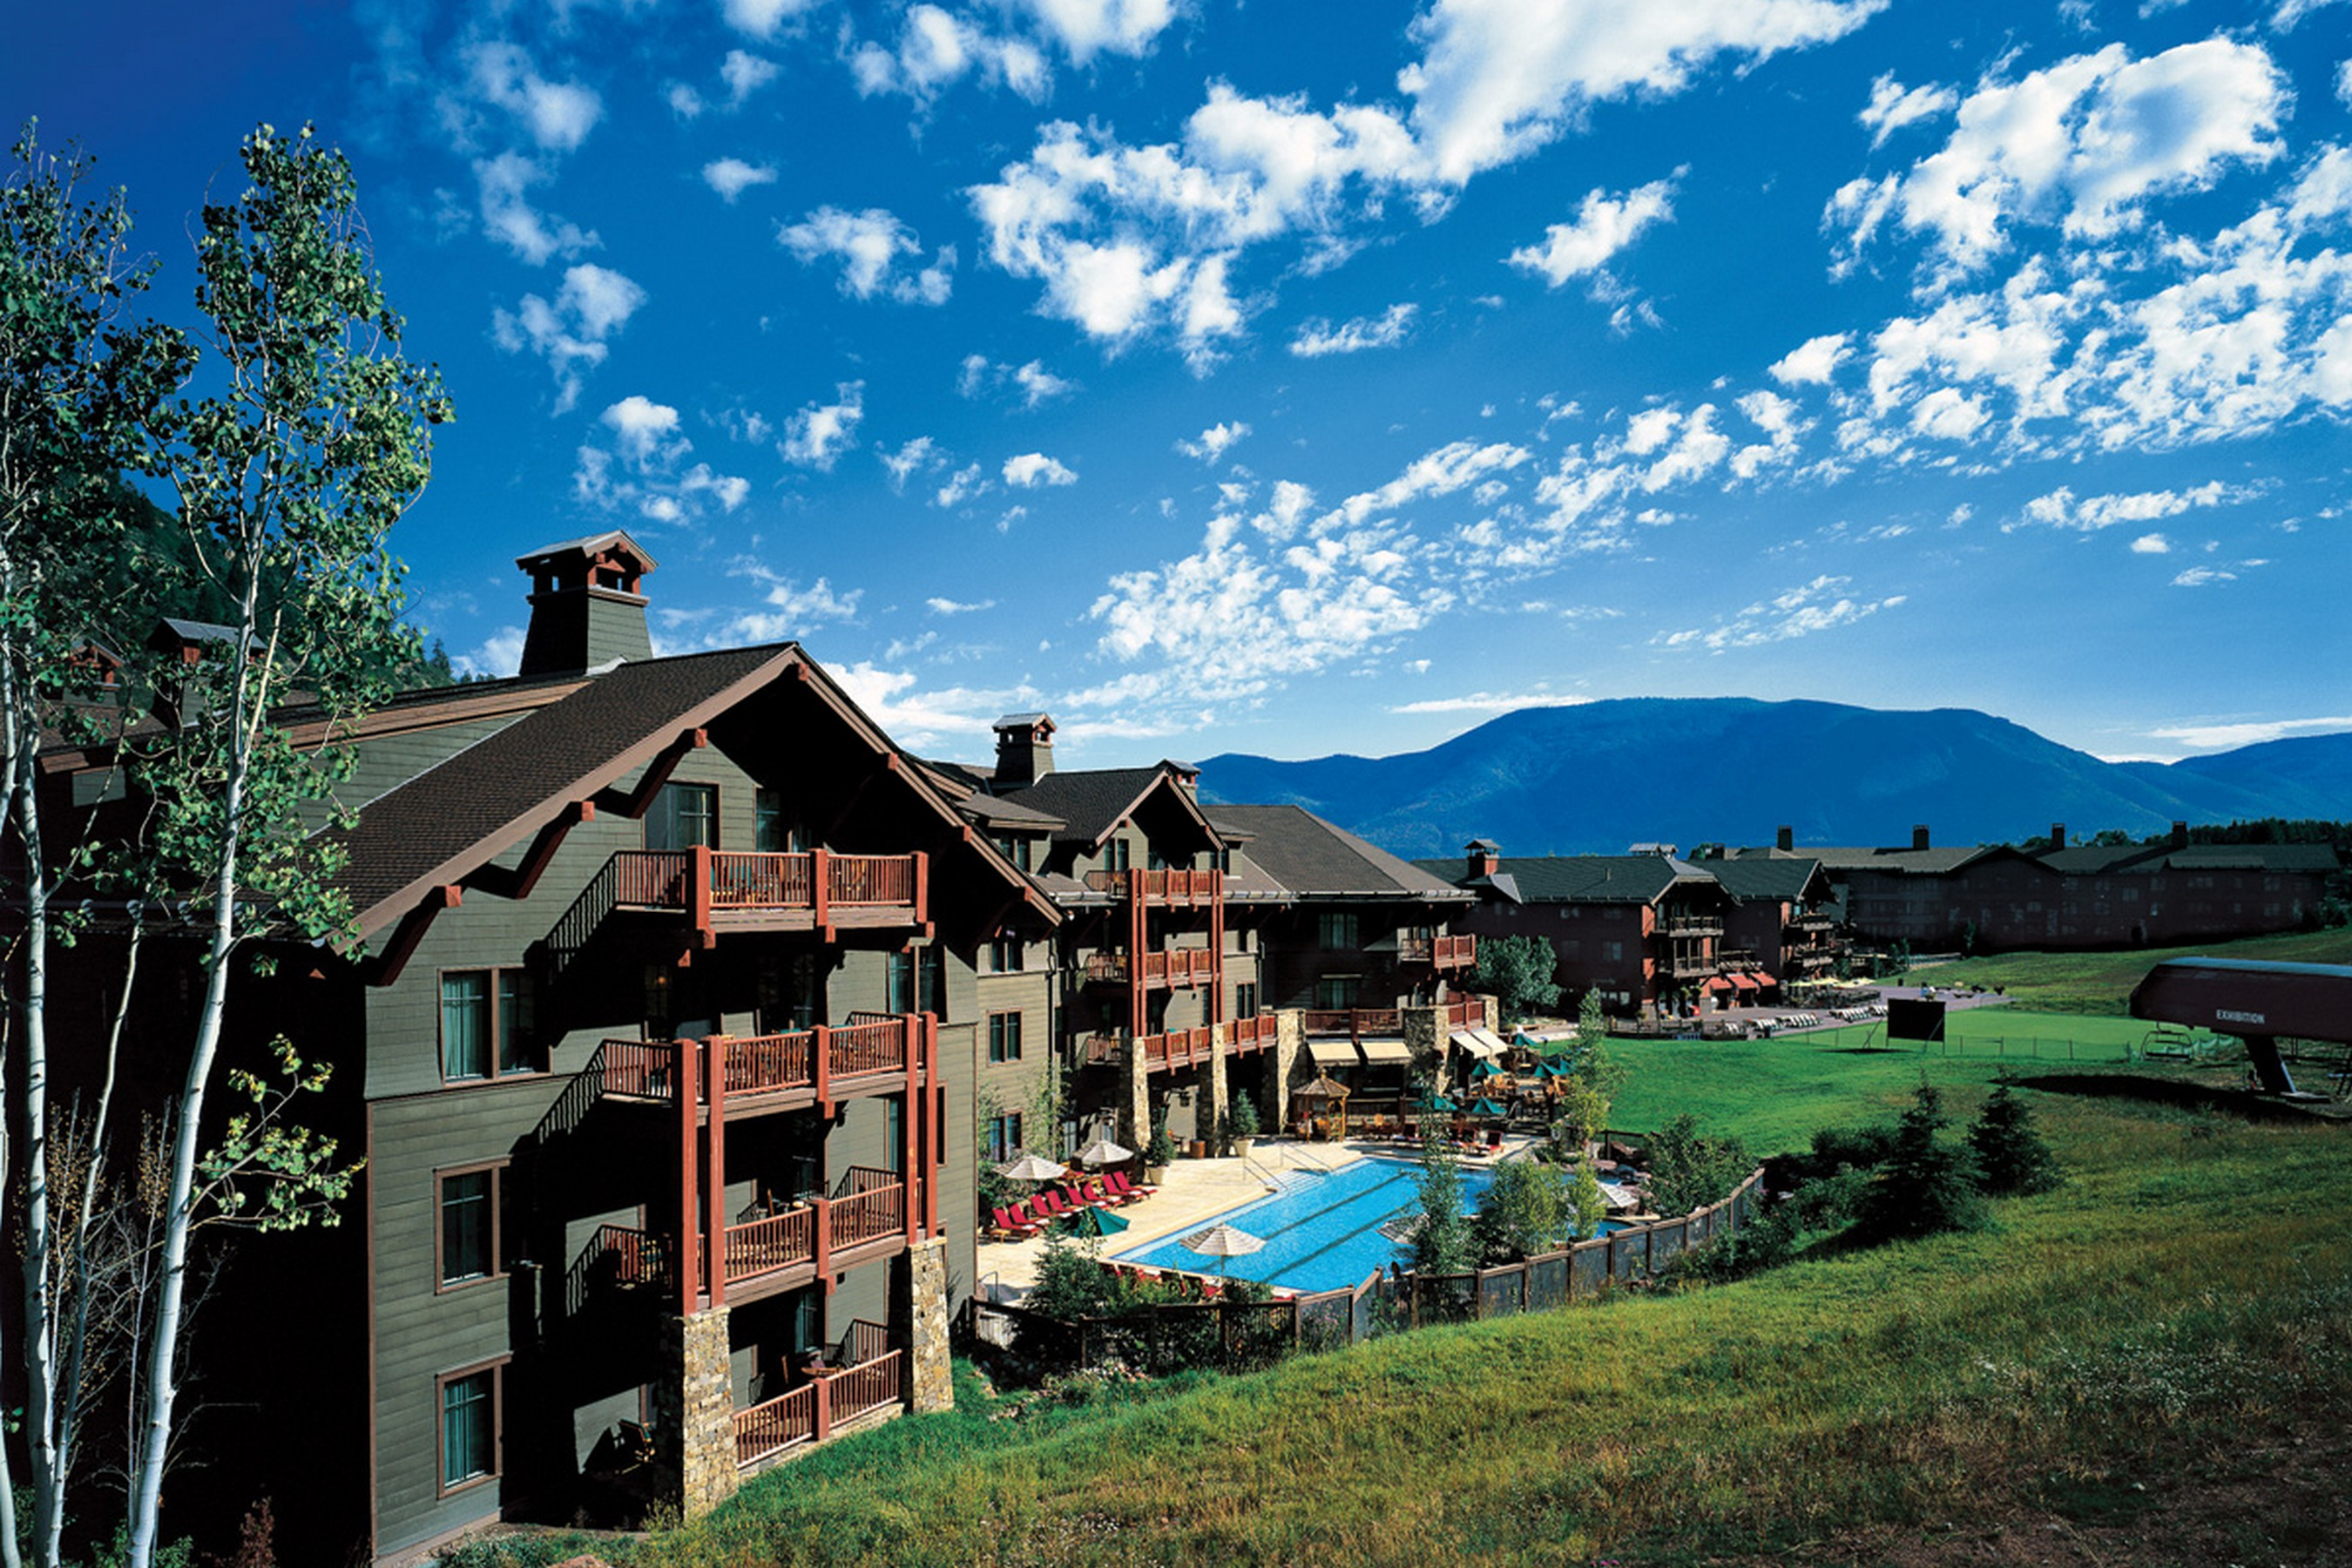 Fractional Ownership for Sale at Ritz-Carlton Club Aspen Highlands Fractional Condo Interest 0075 Prospector Road, 8204, Interest 9, Ritz-Carlton Club Aspen, Colorado, 81611 United States